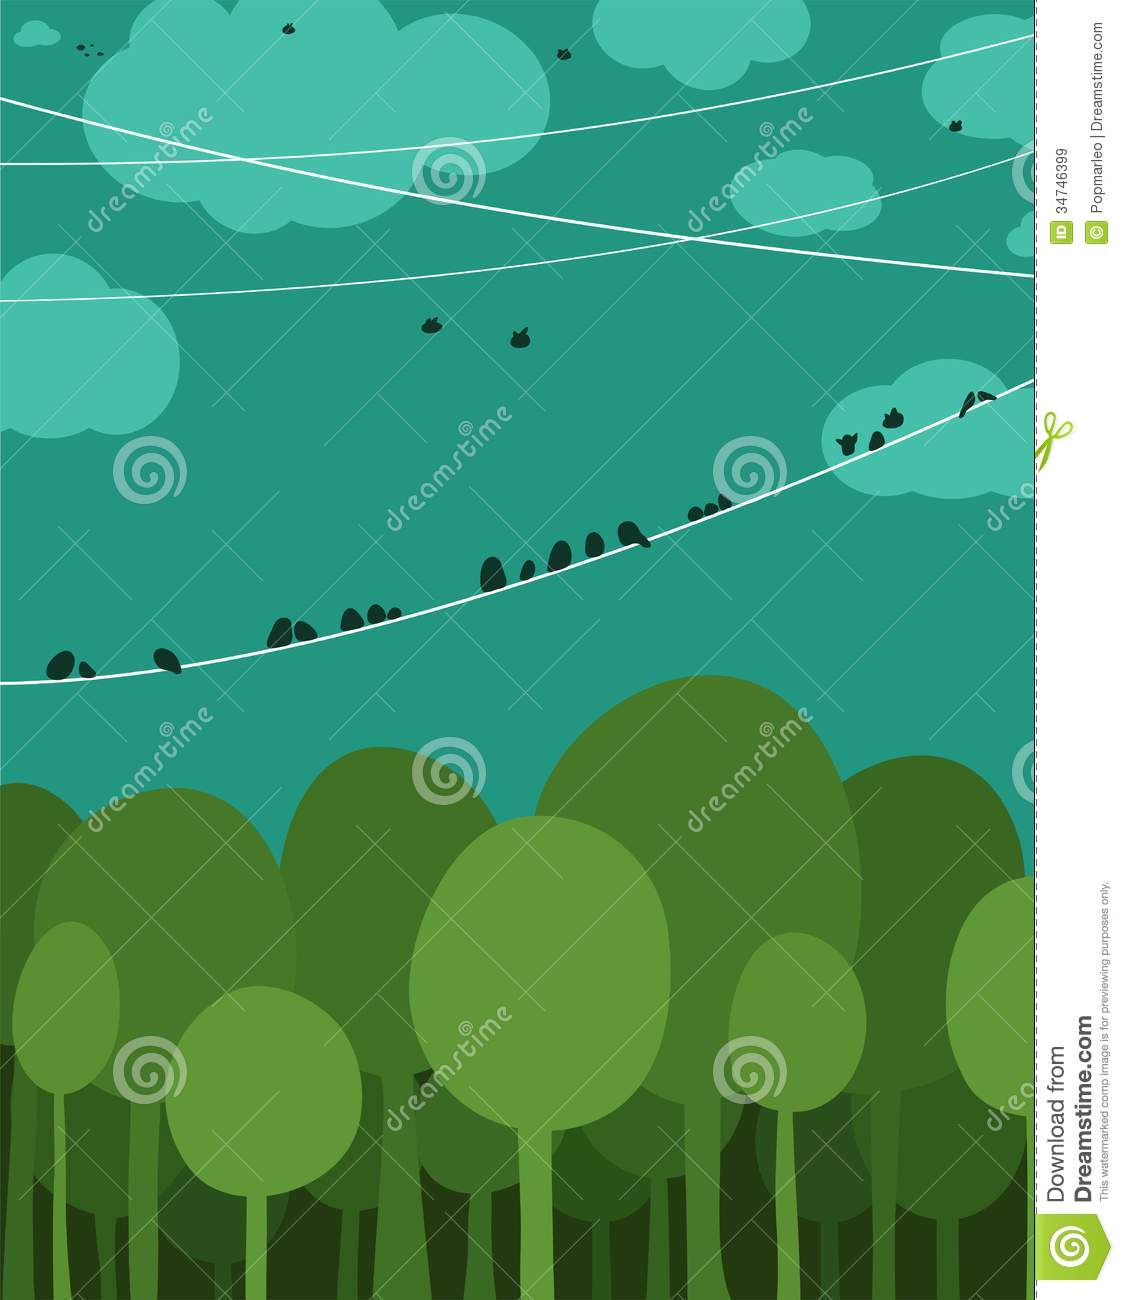 Forest And Birds Sitting On Wires Graphic Design Royalty